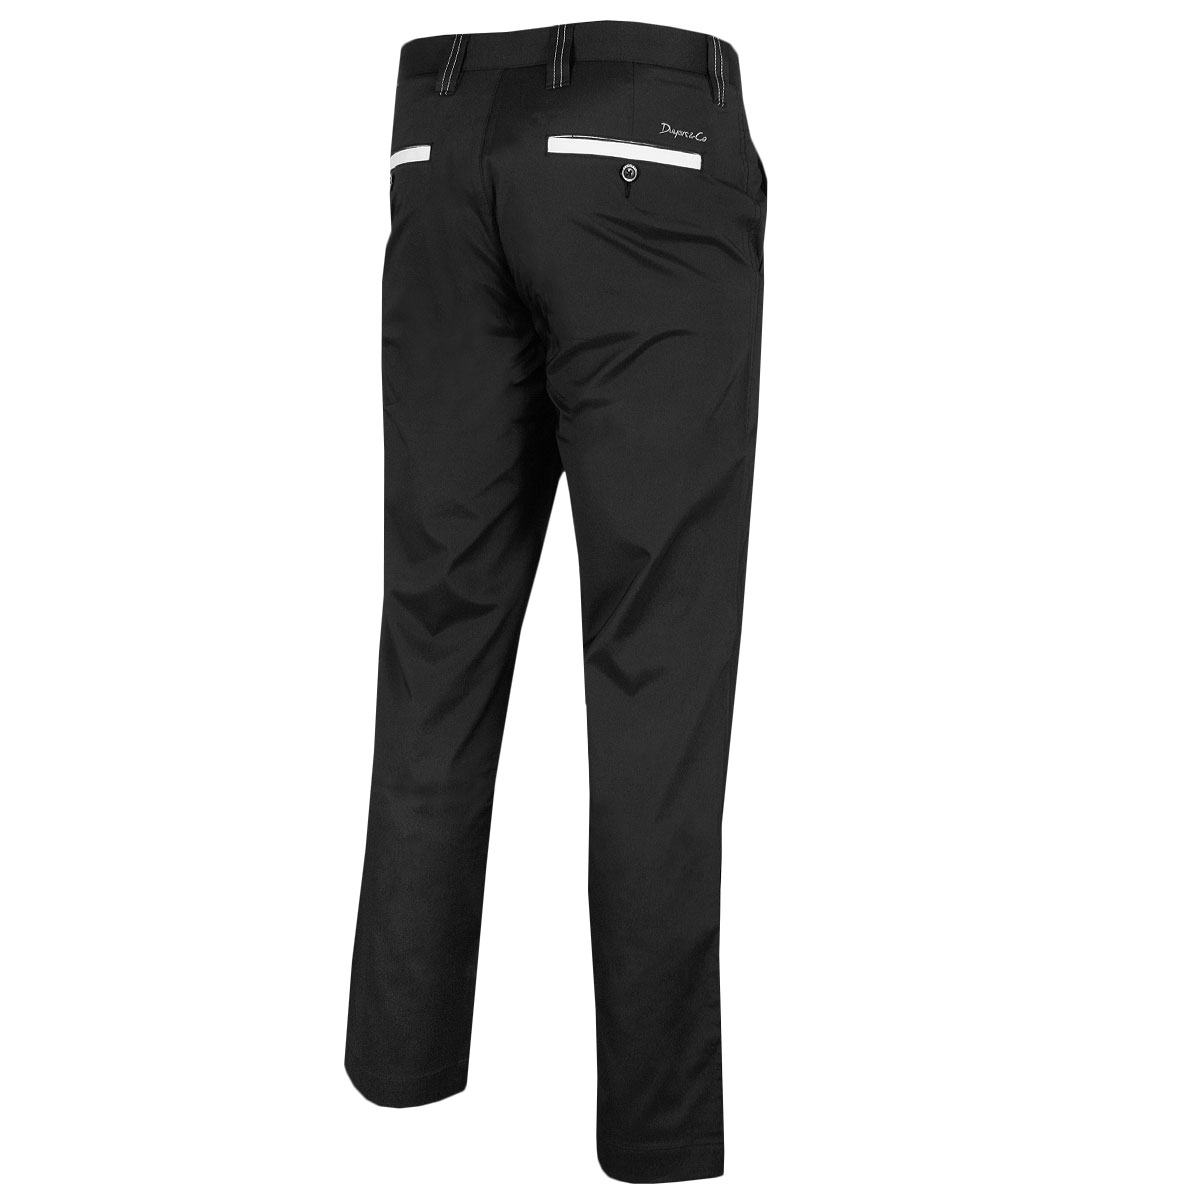 Dwyers-amp-Co-Mens-Matchplay-Stretch-Lightweight-Golf-Trousers-38-OFF-RRP thumbnail 15